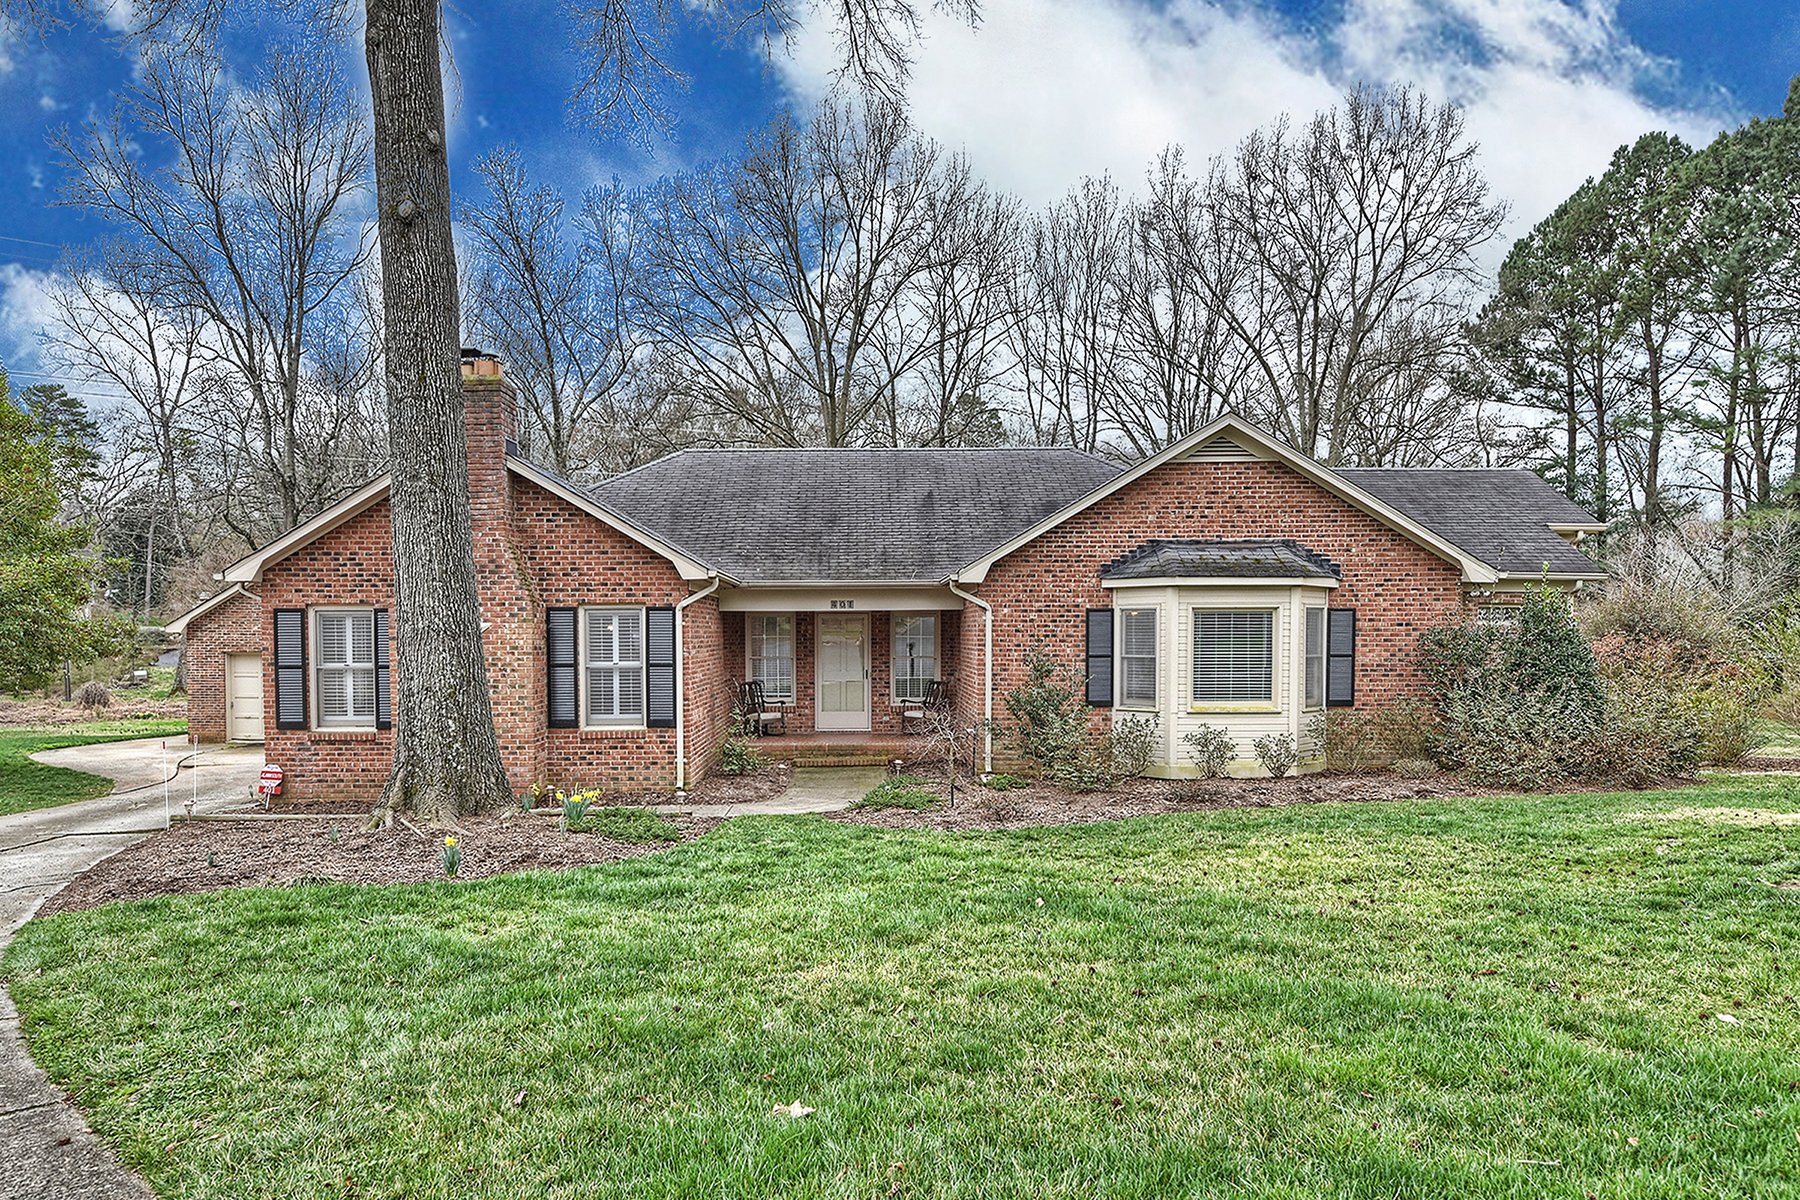 Single Family Home for Sale at SHERWOOD FOREST 401 Briarpatch Ln Charlotte, North Carolina 28211 United States